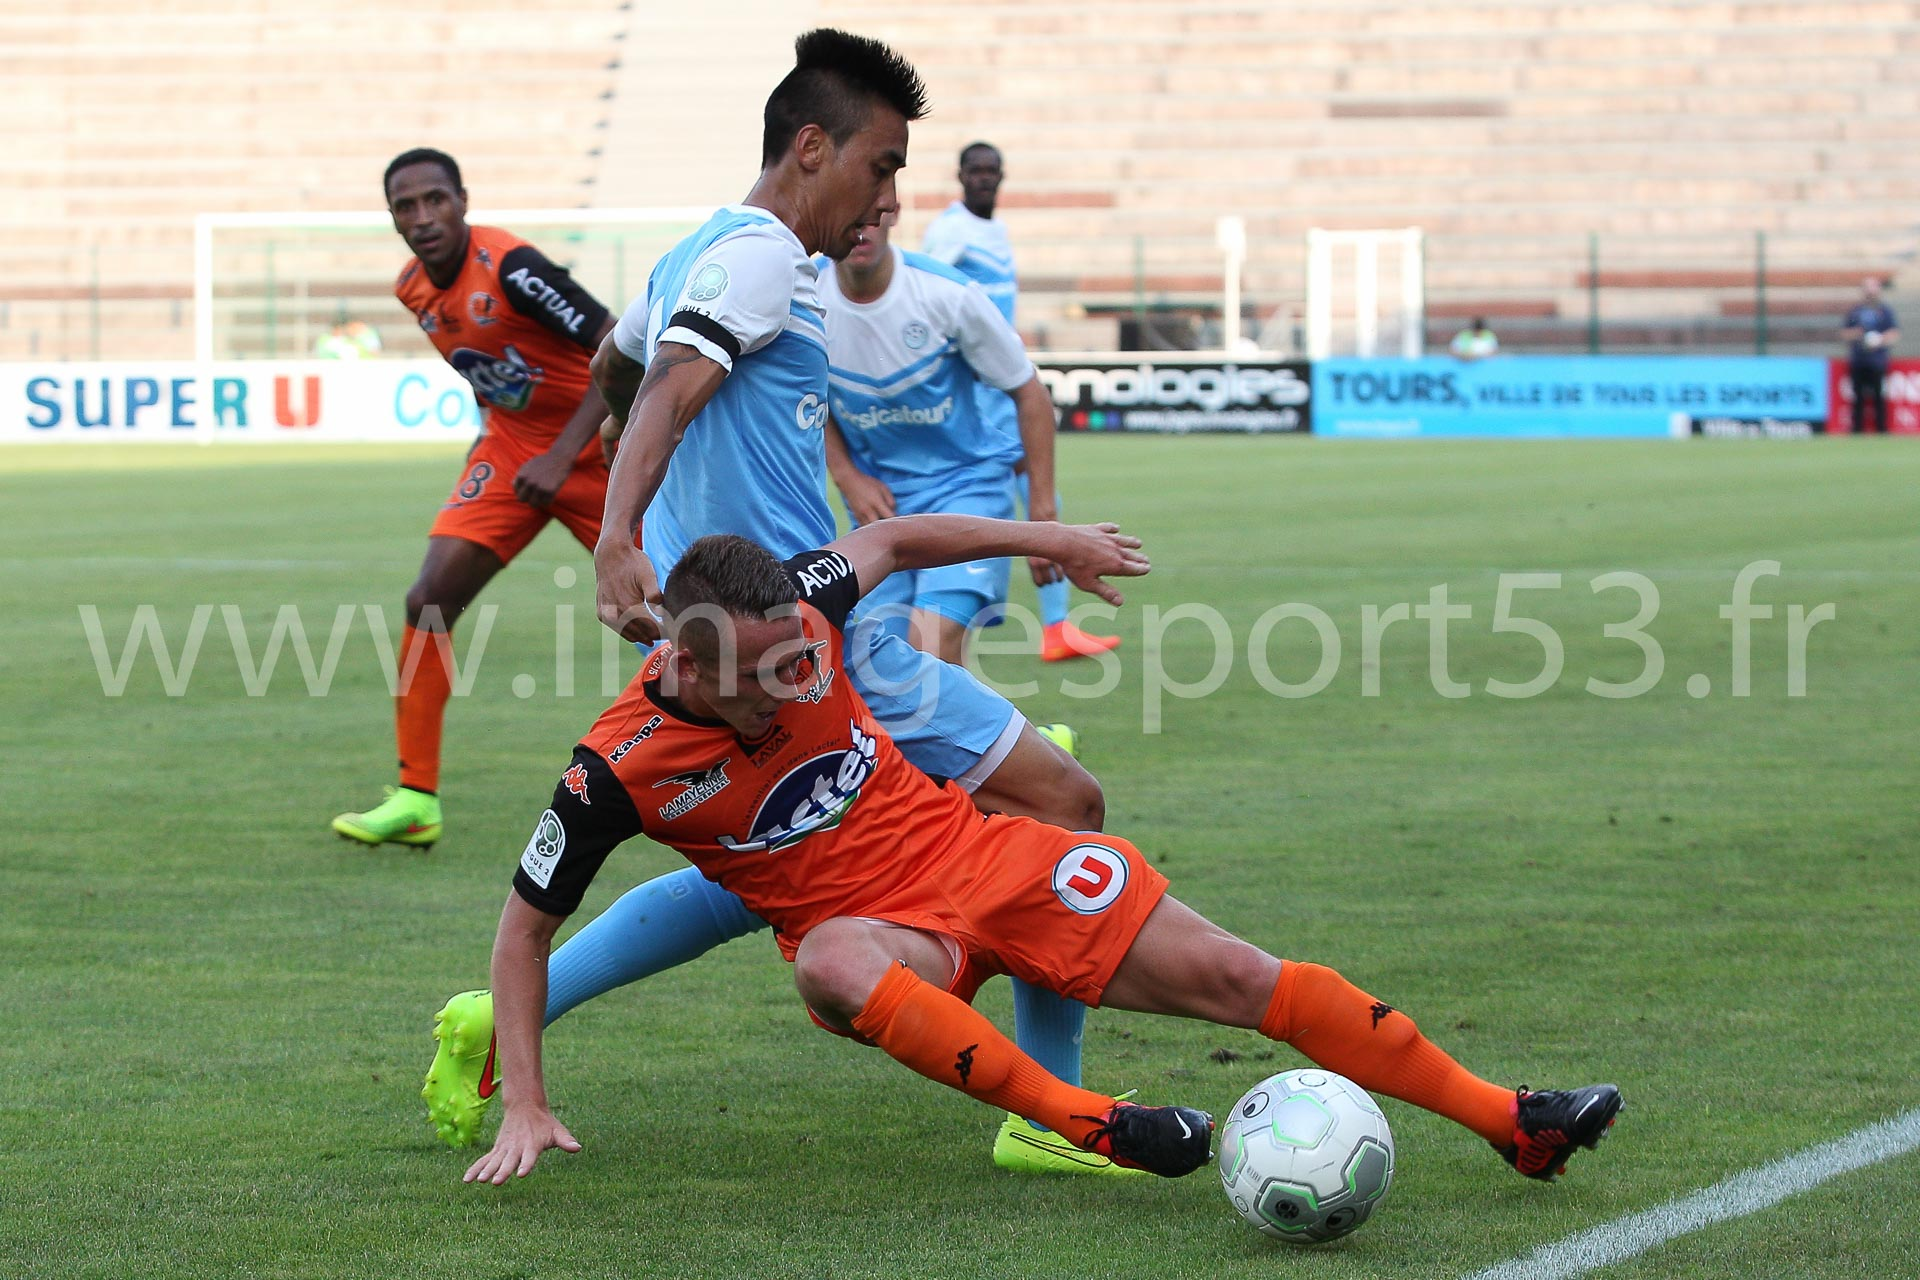 NG-Ligue2-1415-Amical6_Tours-Laval_2